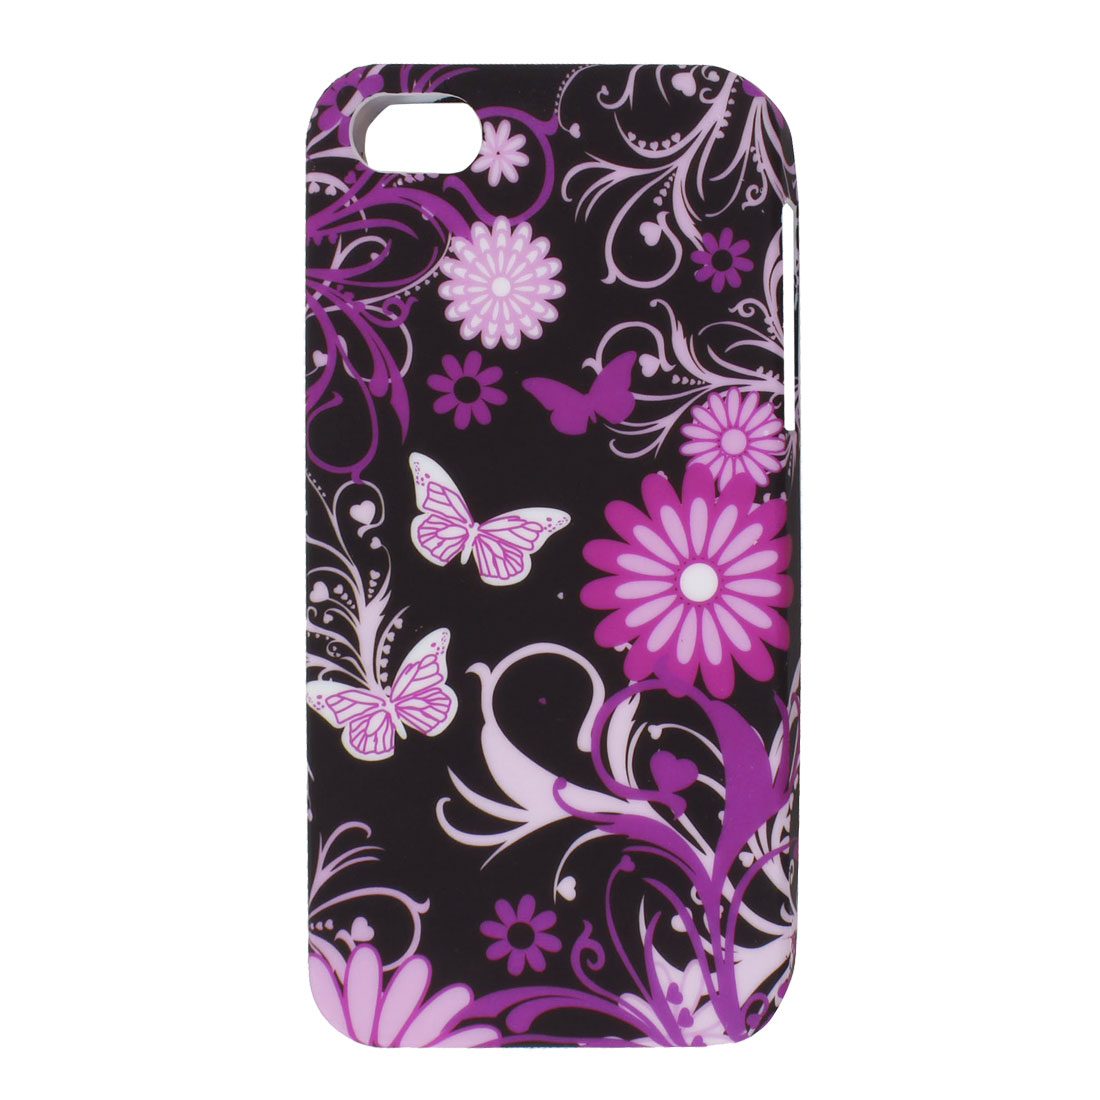 Purple Pink Butterfly Flower Black TPU Soft Case Cover for Apple iPhone 5 5G